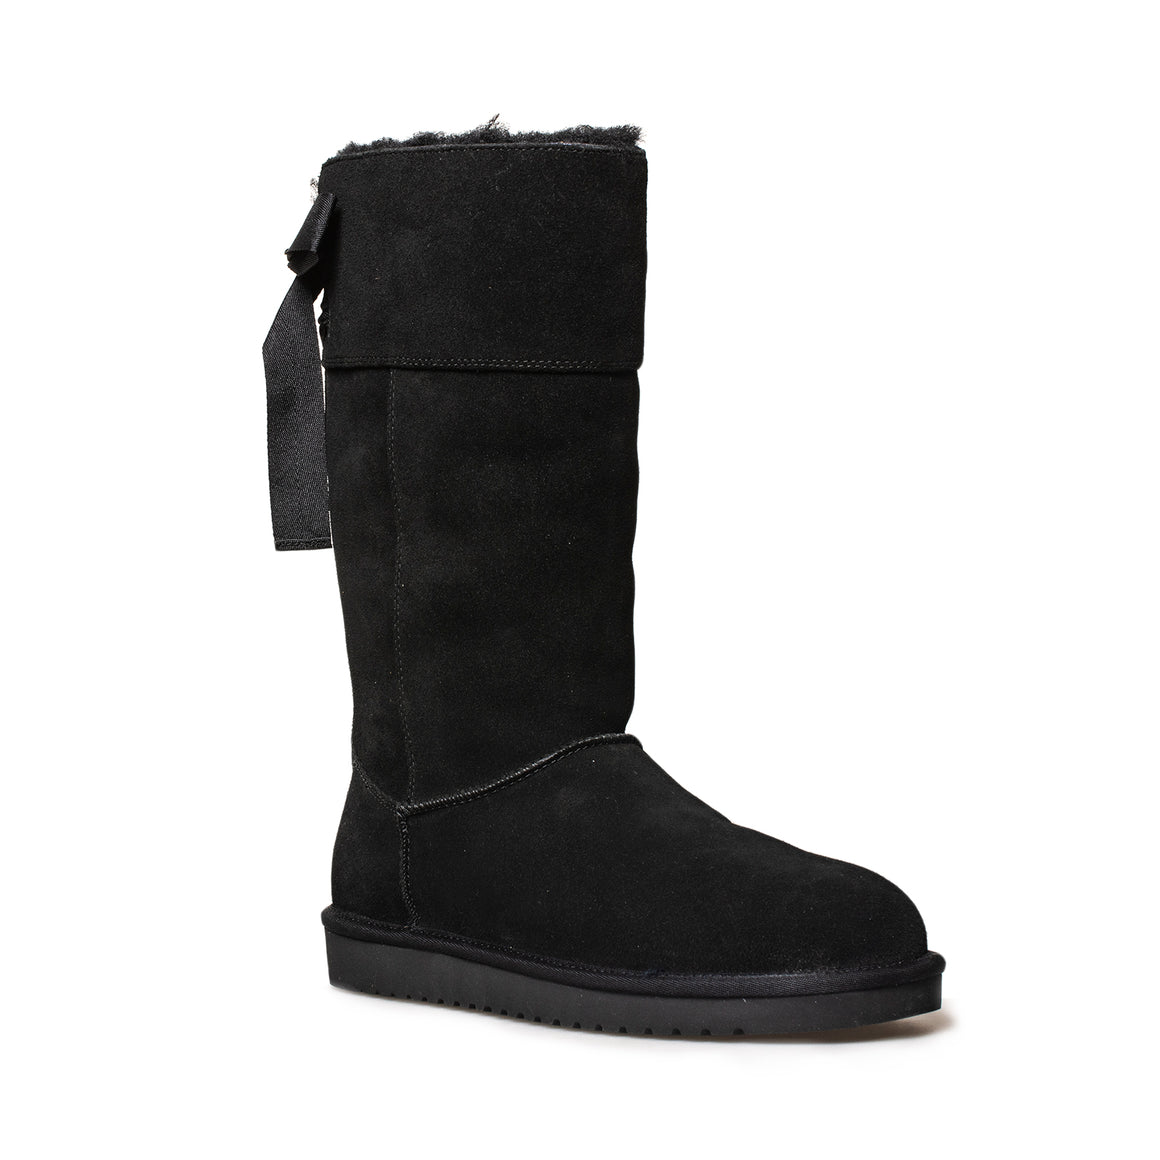 Koolaburra By UGG Andrah Tall Black - Women's